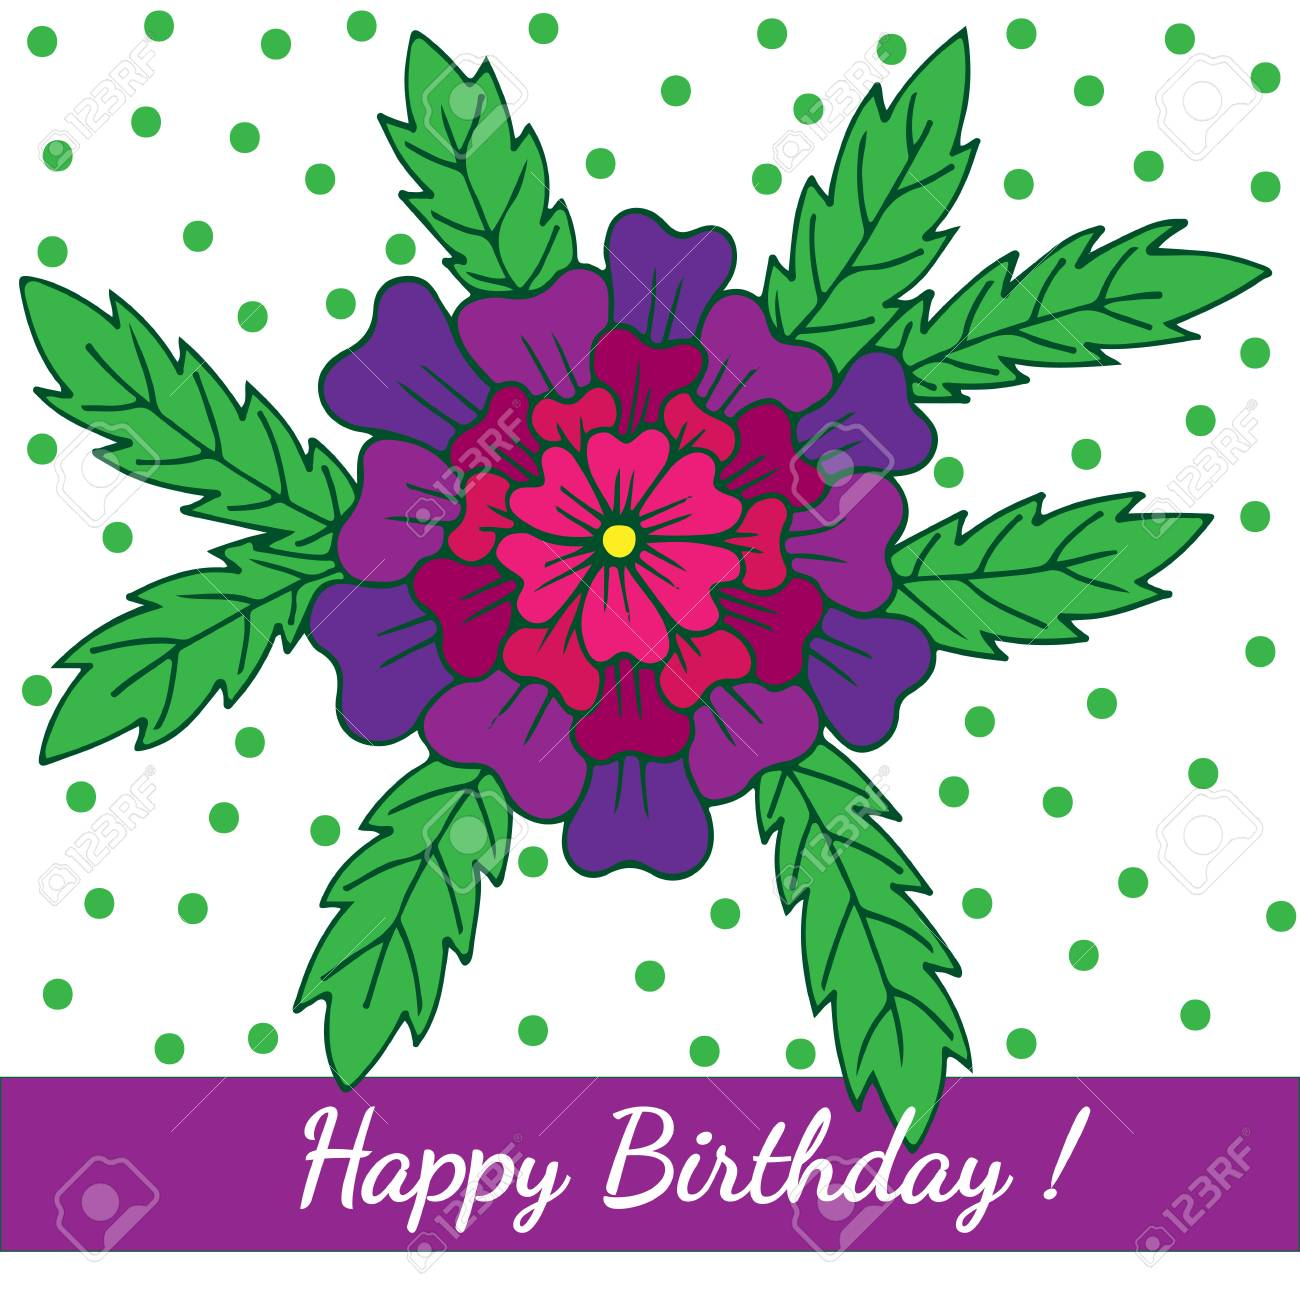 Happy Birthday Template Greeting Card With Big Violet Flower